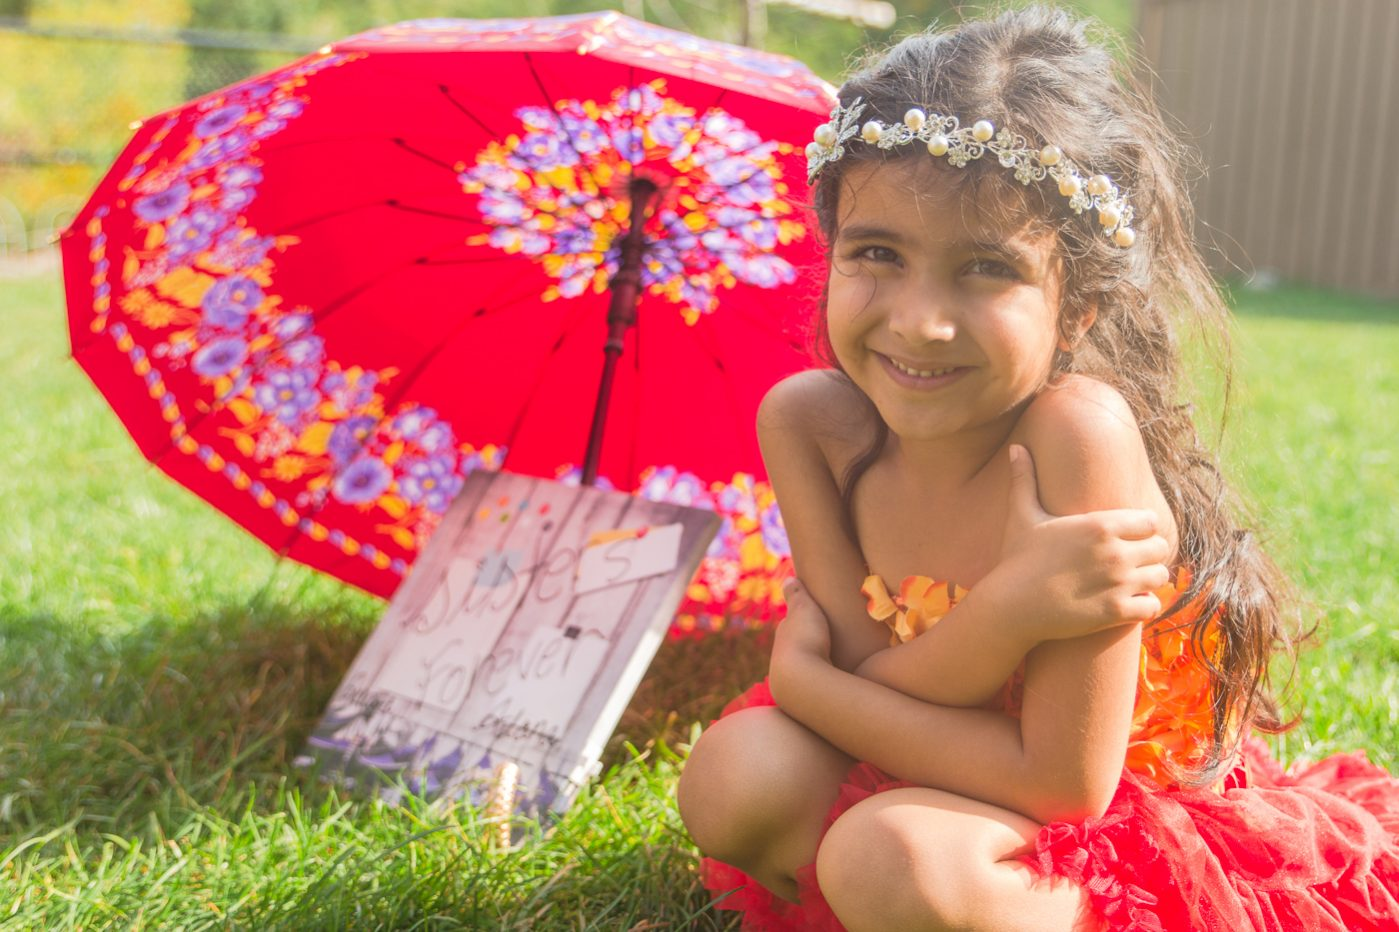 Girl in red dress with matching red umbrella in sunlight.